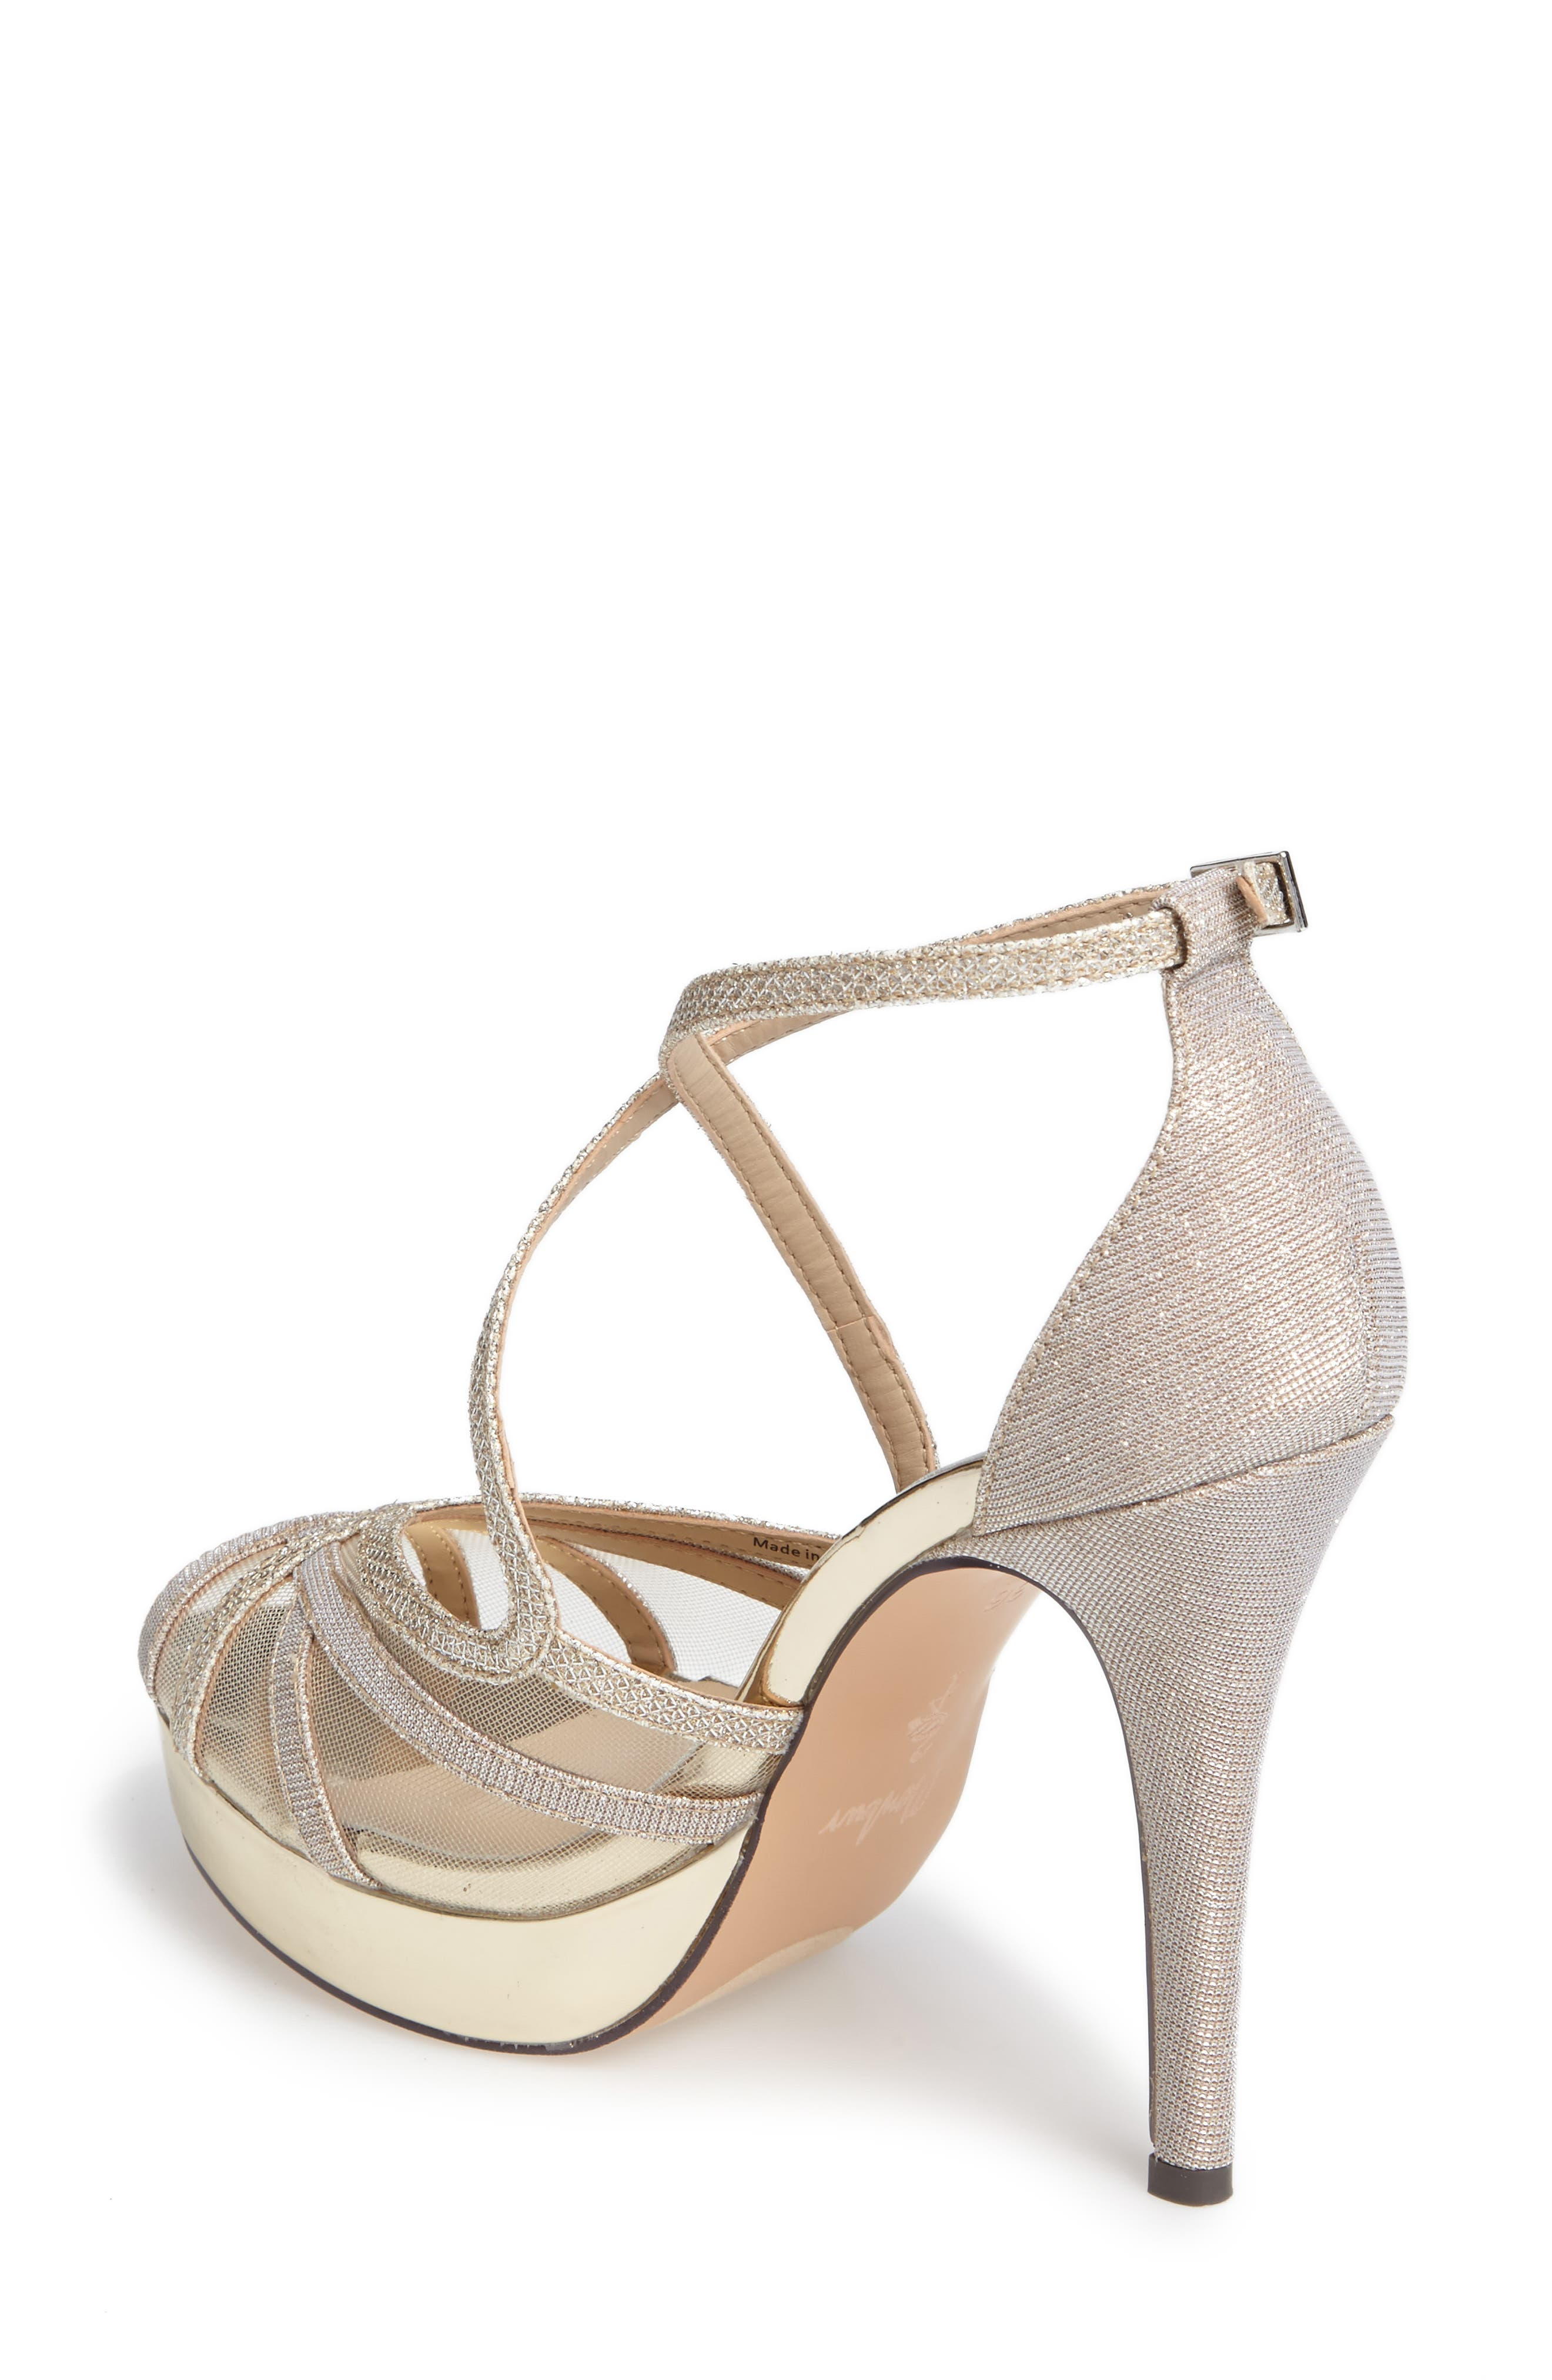 MENBUR, Rosa Platform Evening Sandal, Alternate thumbnail 2, color, 021